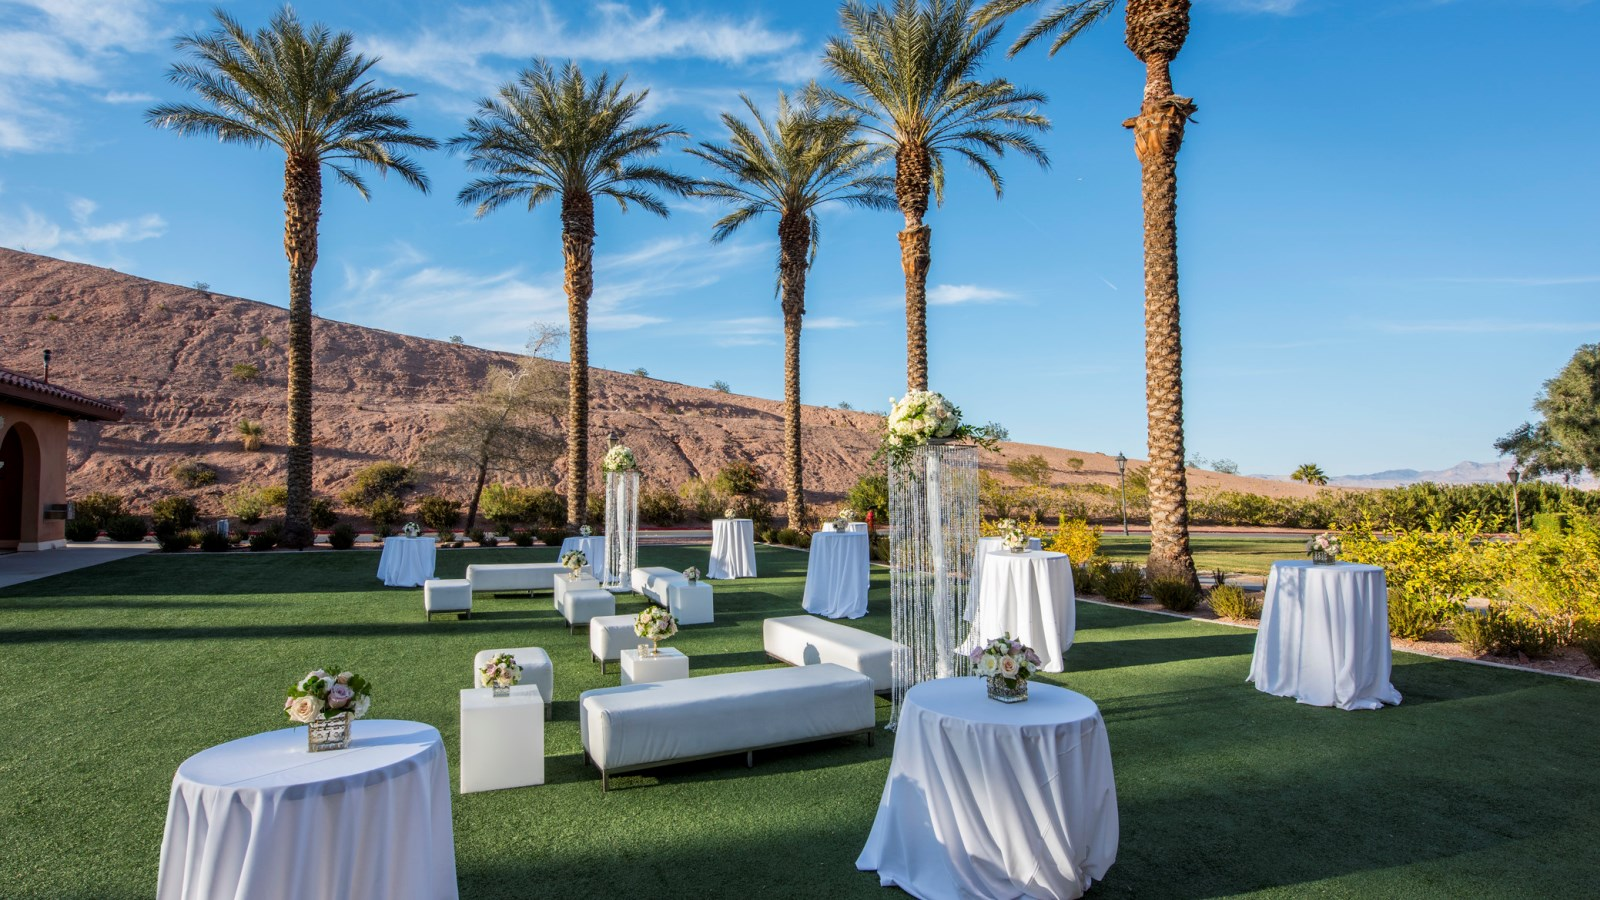 Lake Las Vegas Wedding Venues - La Menzah Lawn